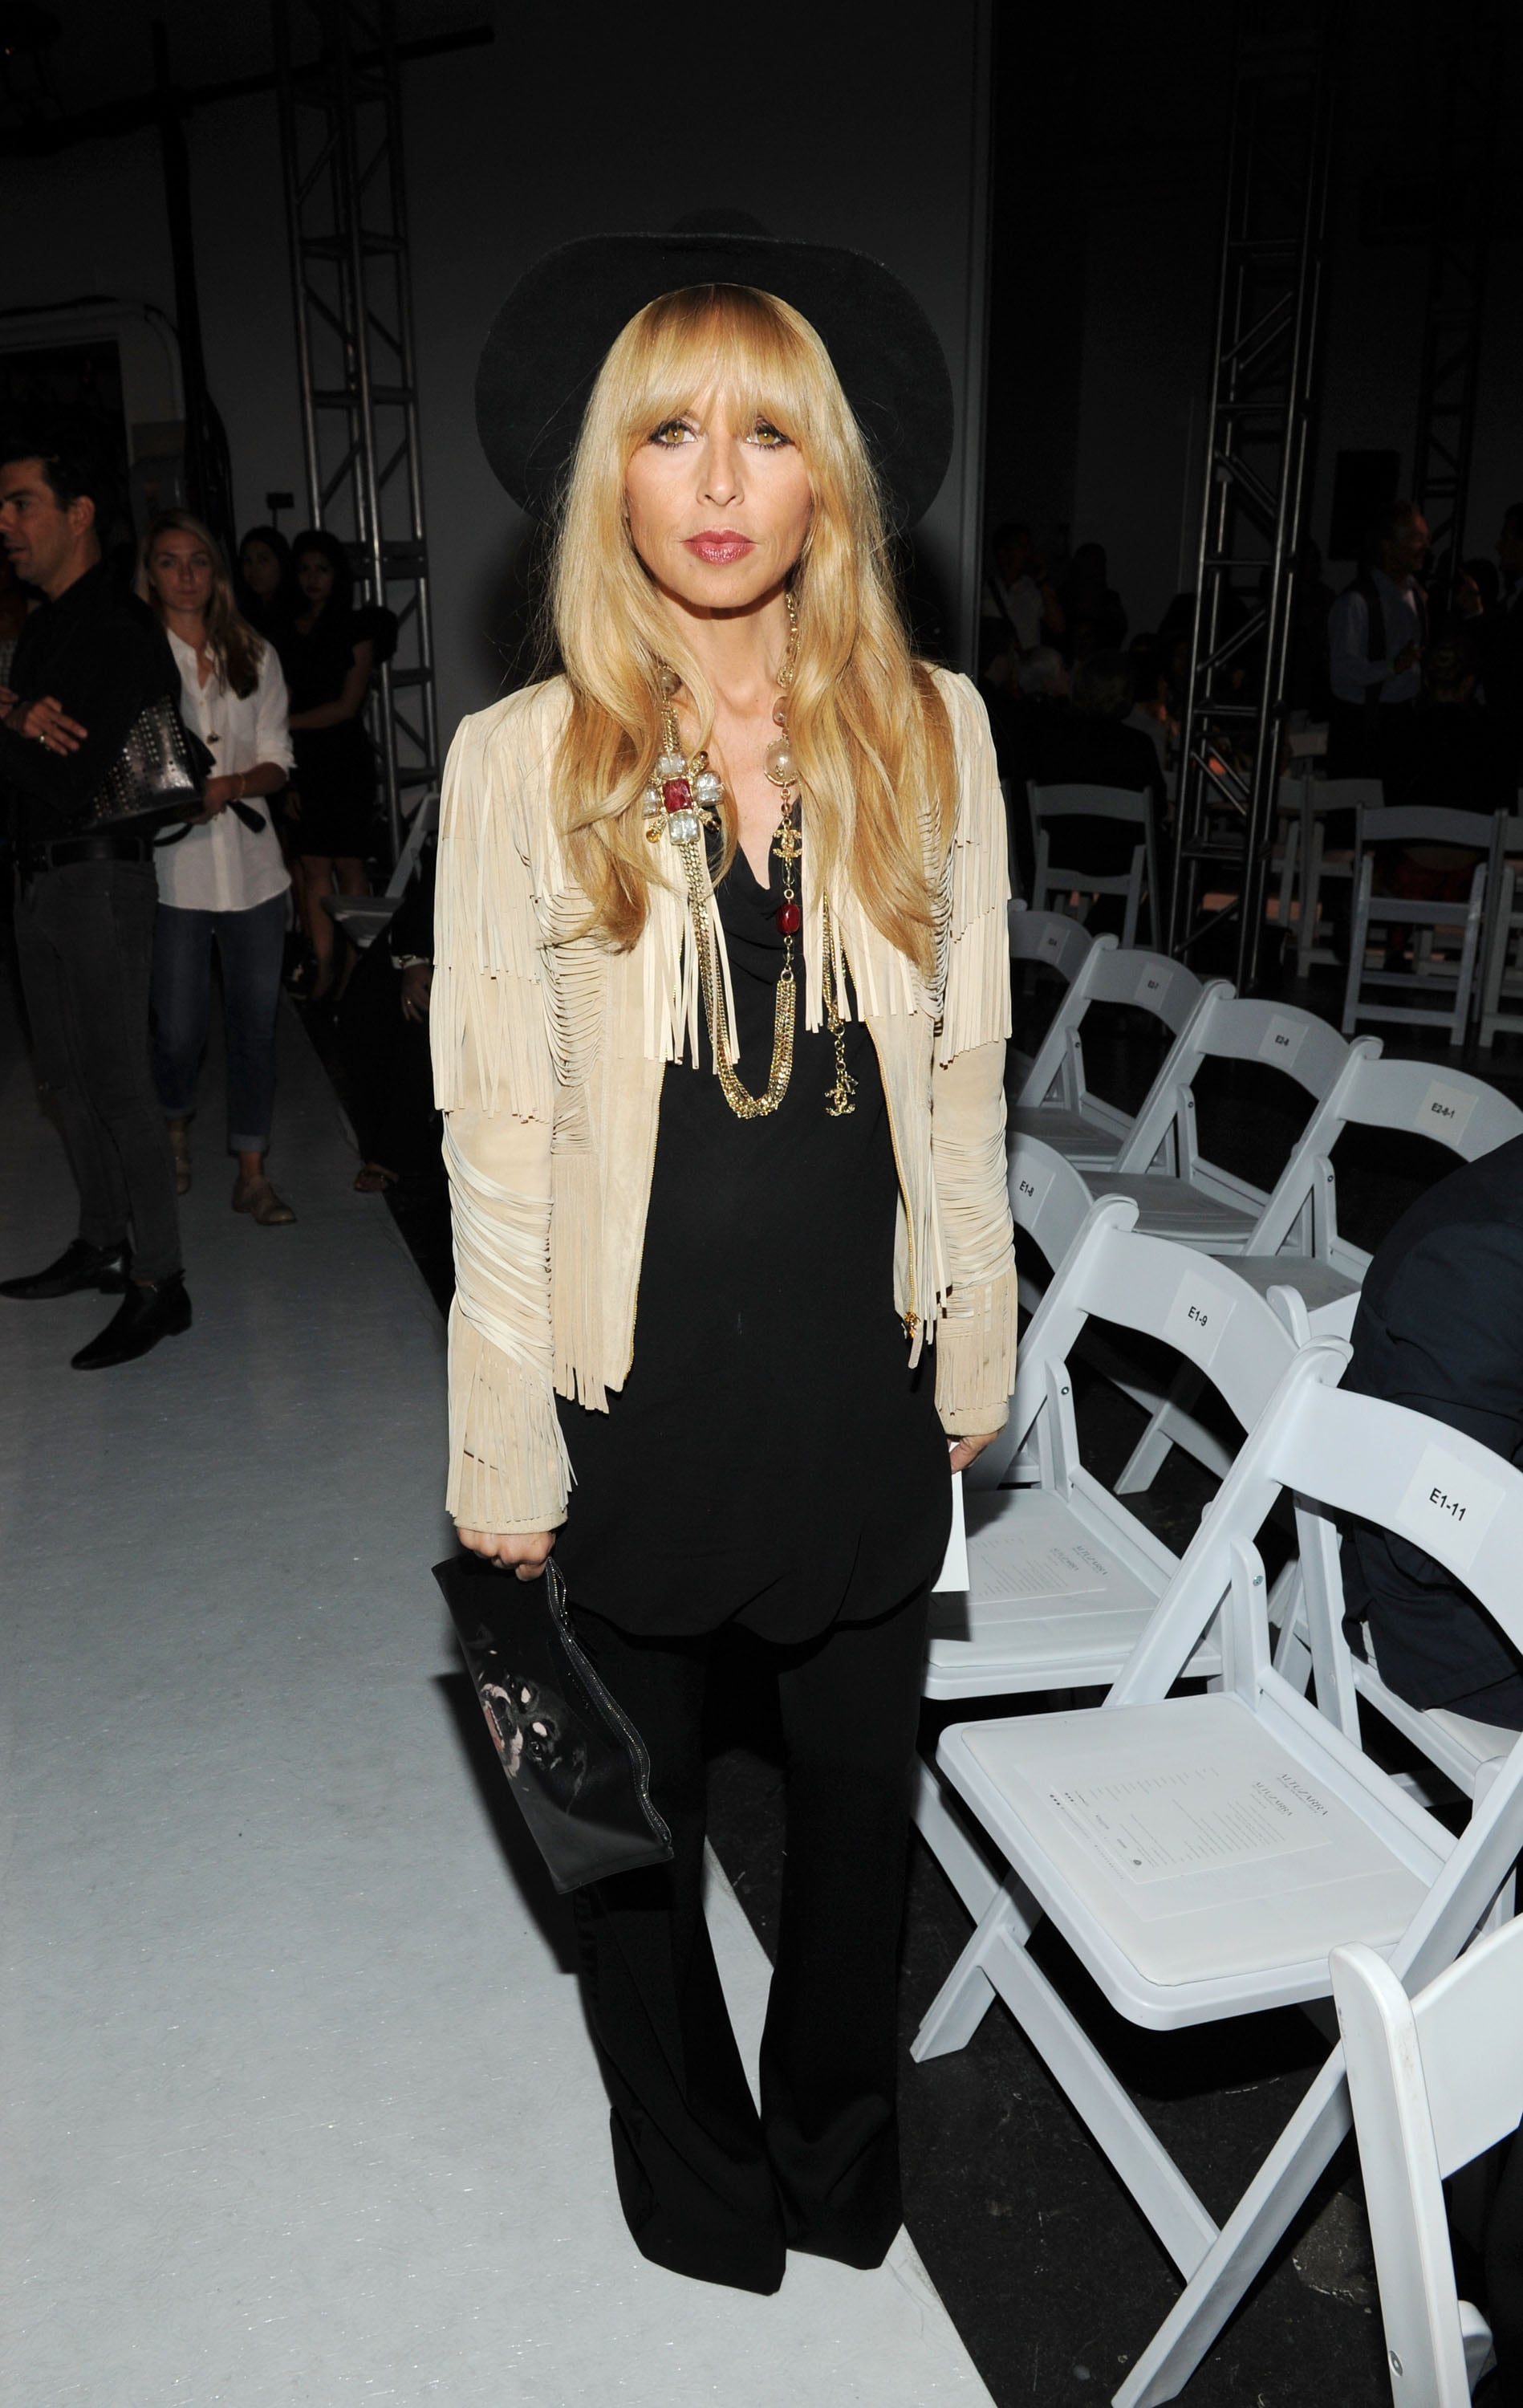 Rachel Zoe was in the bohemian spirit at Altuzarra. She matched a black jumpsuit with a black wide-brim hat, then threw on a suede fringe jacket and a Chanel necklace to finish.